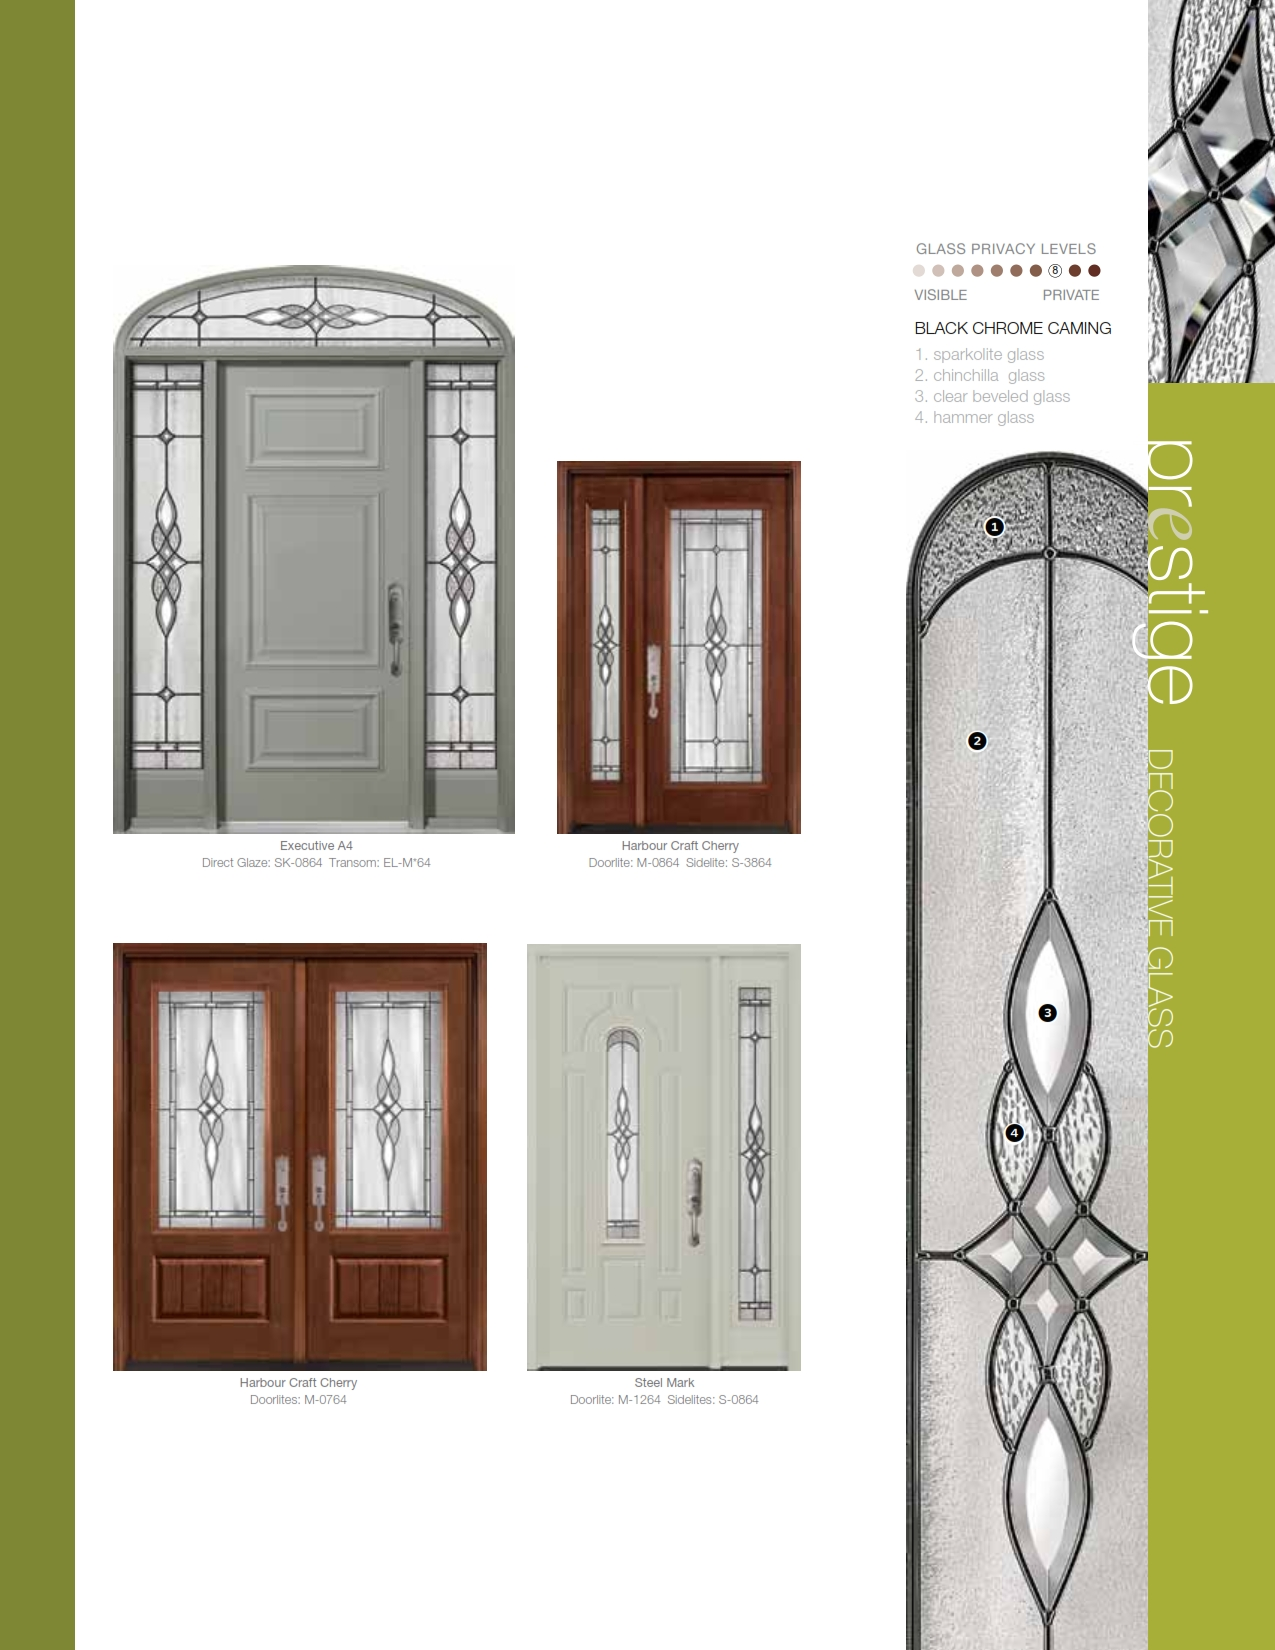 1650 #939A31 Steel Fiberglass Front Door Systems Trutech 041 save image Steel Front Doors 40871275